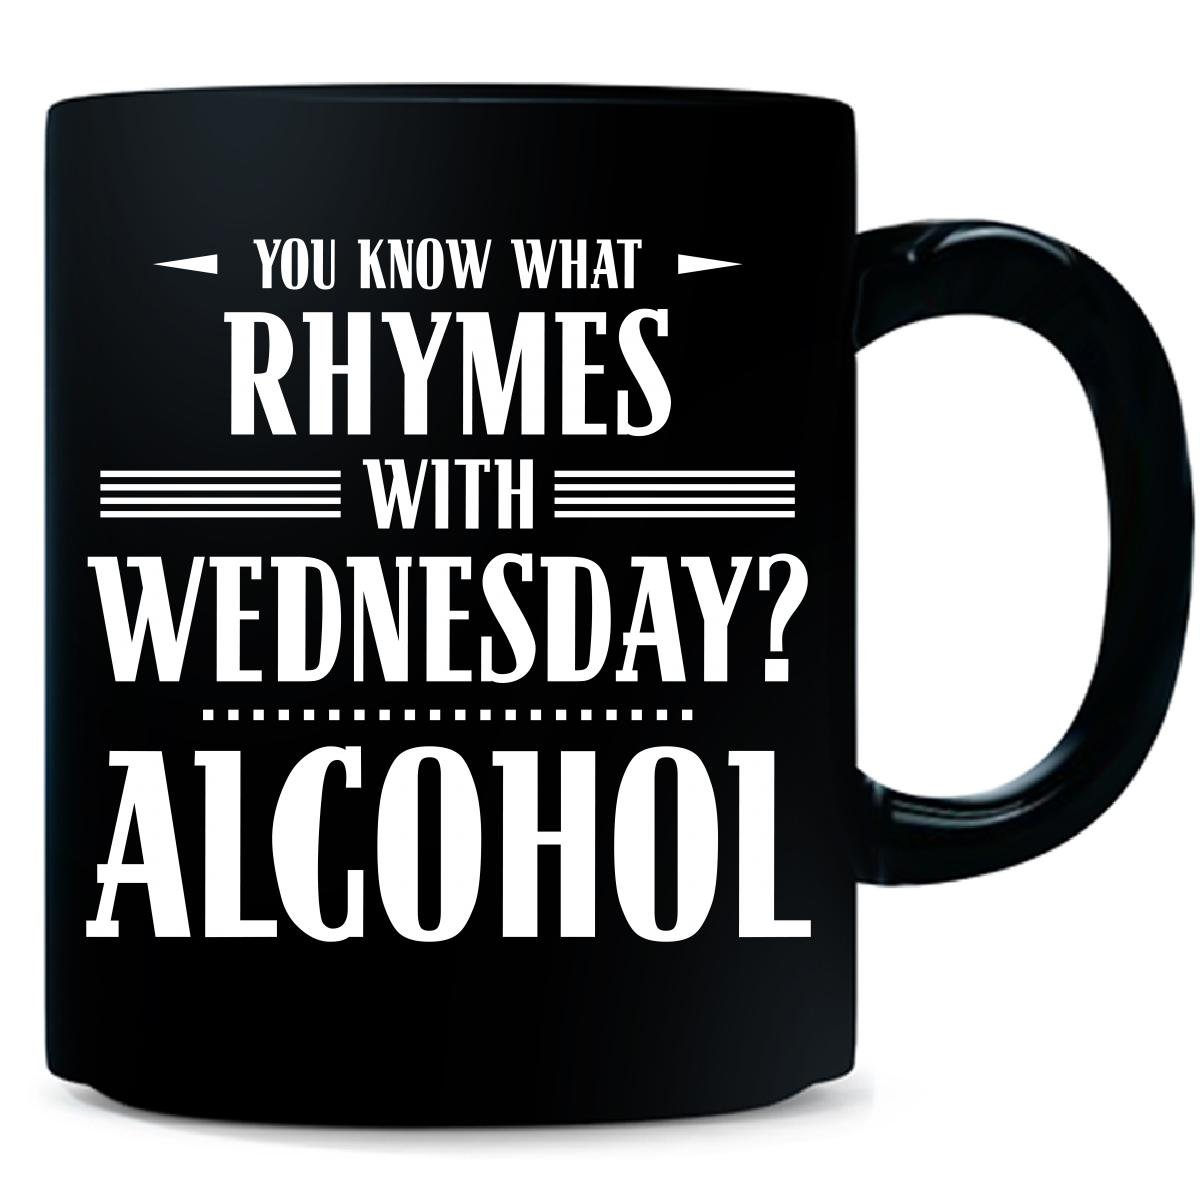 Amazon.com | You Know What Rhymes With Wednesday? Alcohol - Mug ...